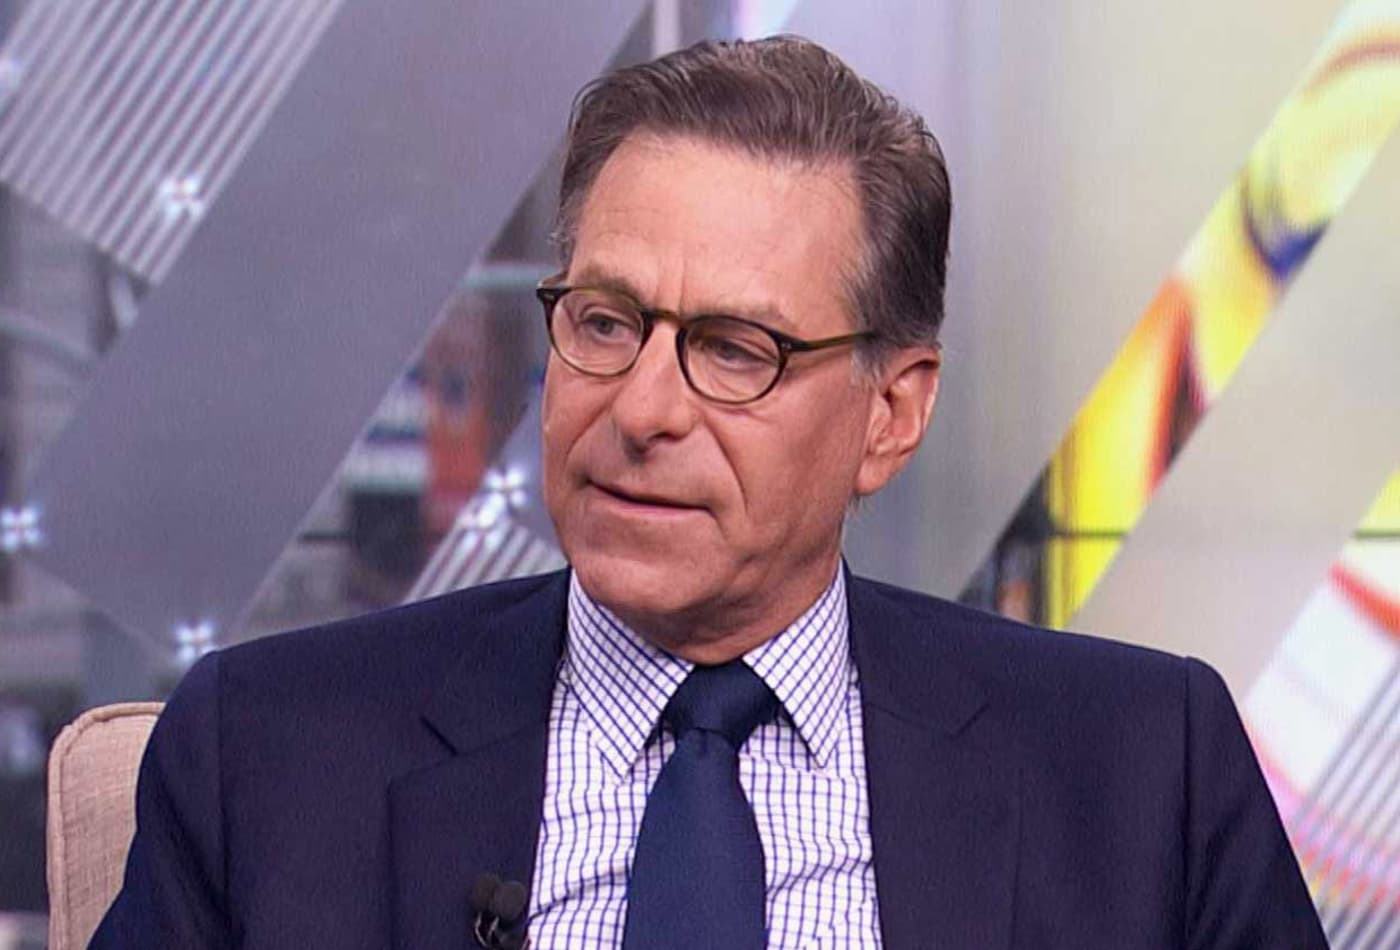 Investors should brace for stocks to drop at least 15% in early 2020, money manager Jack Ablin says